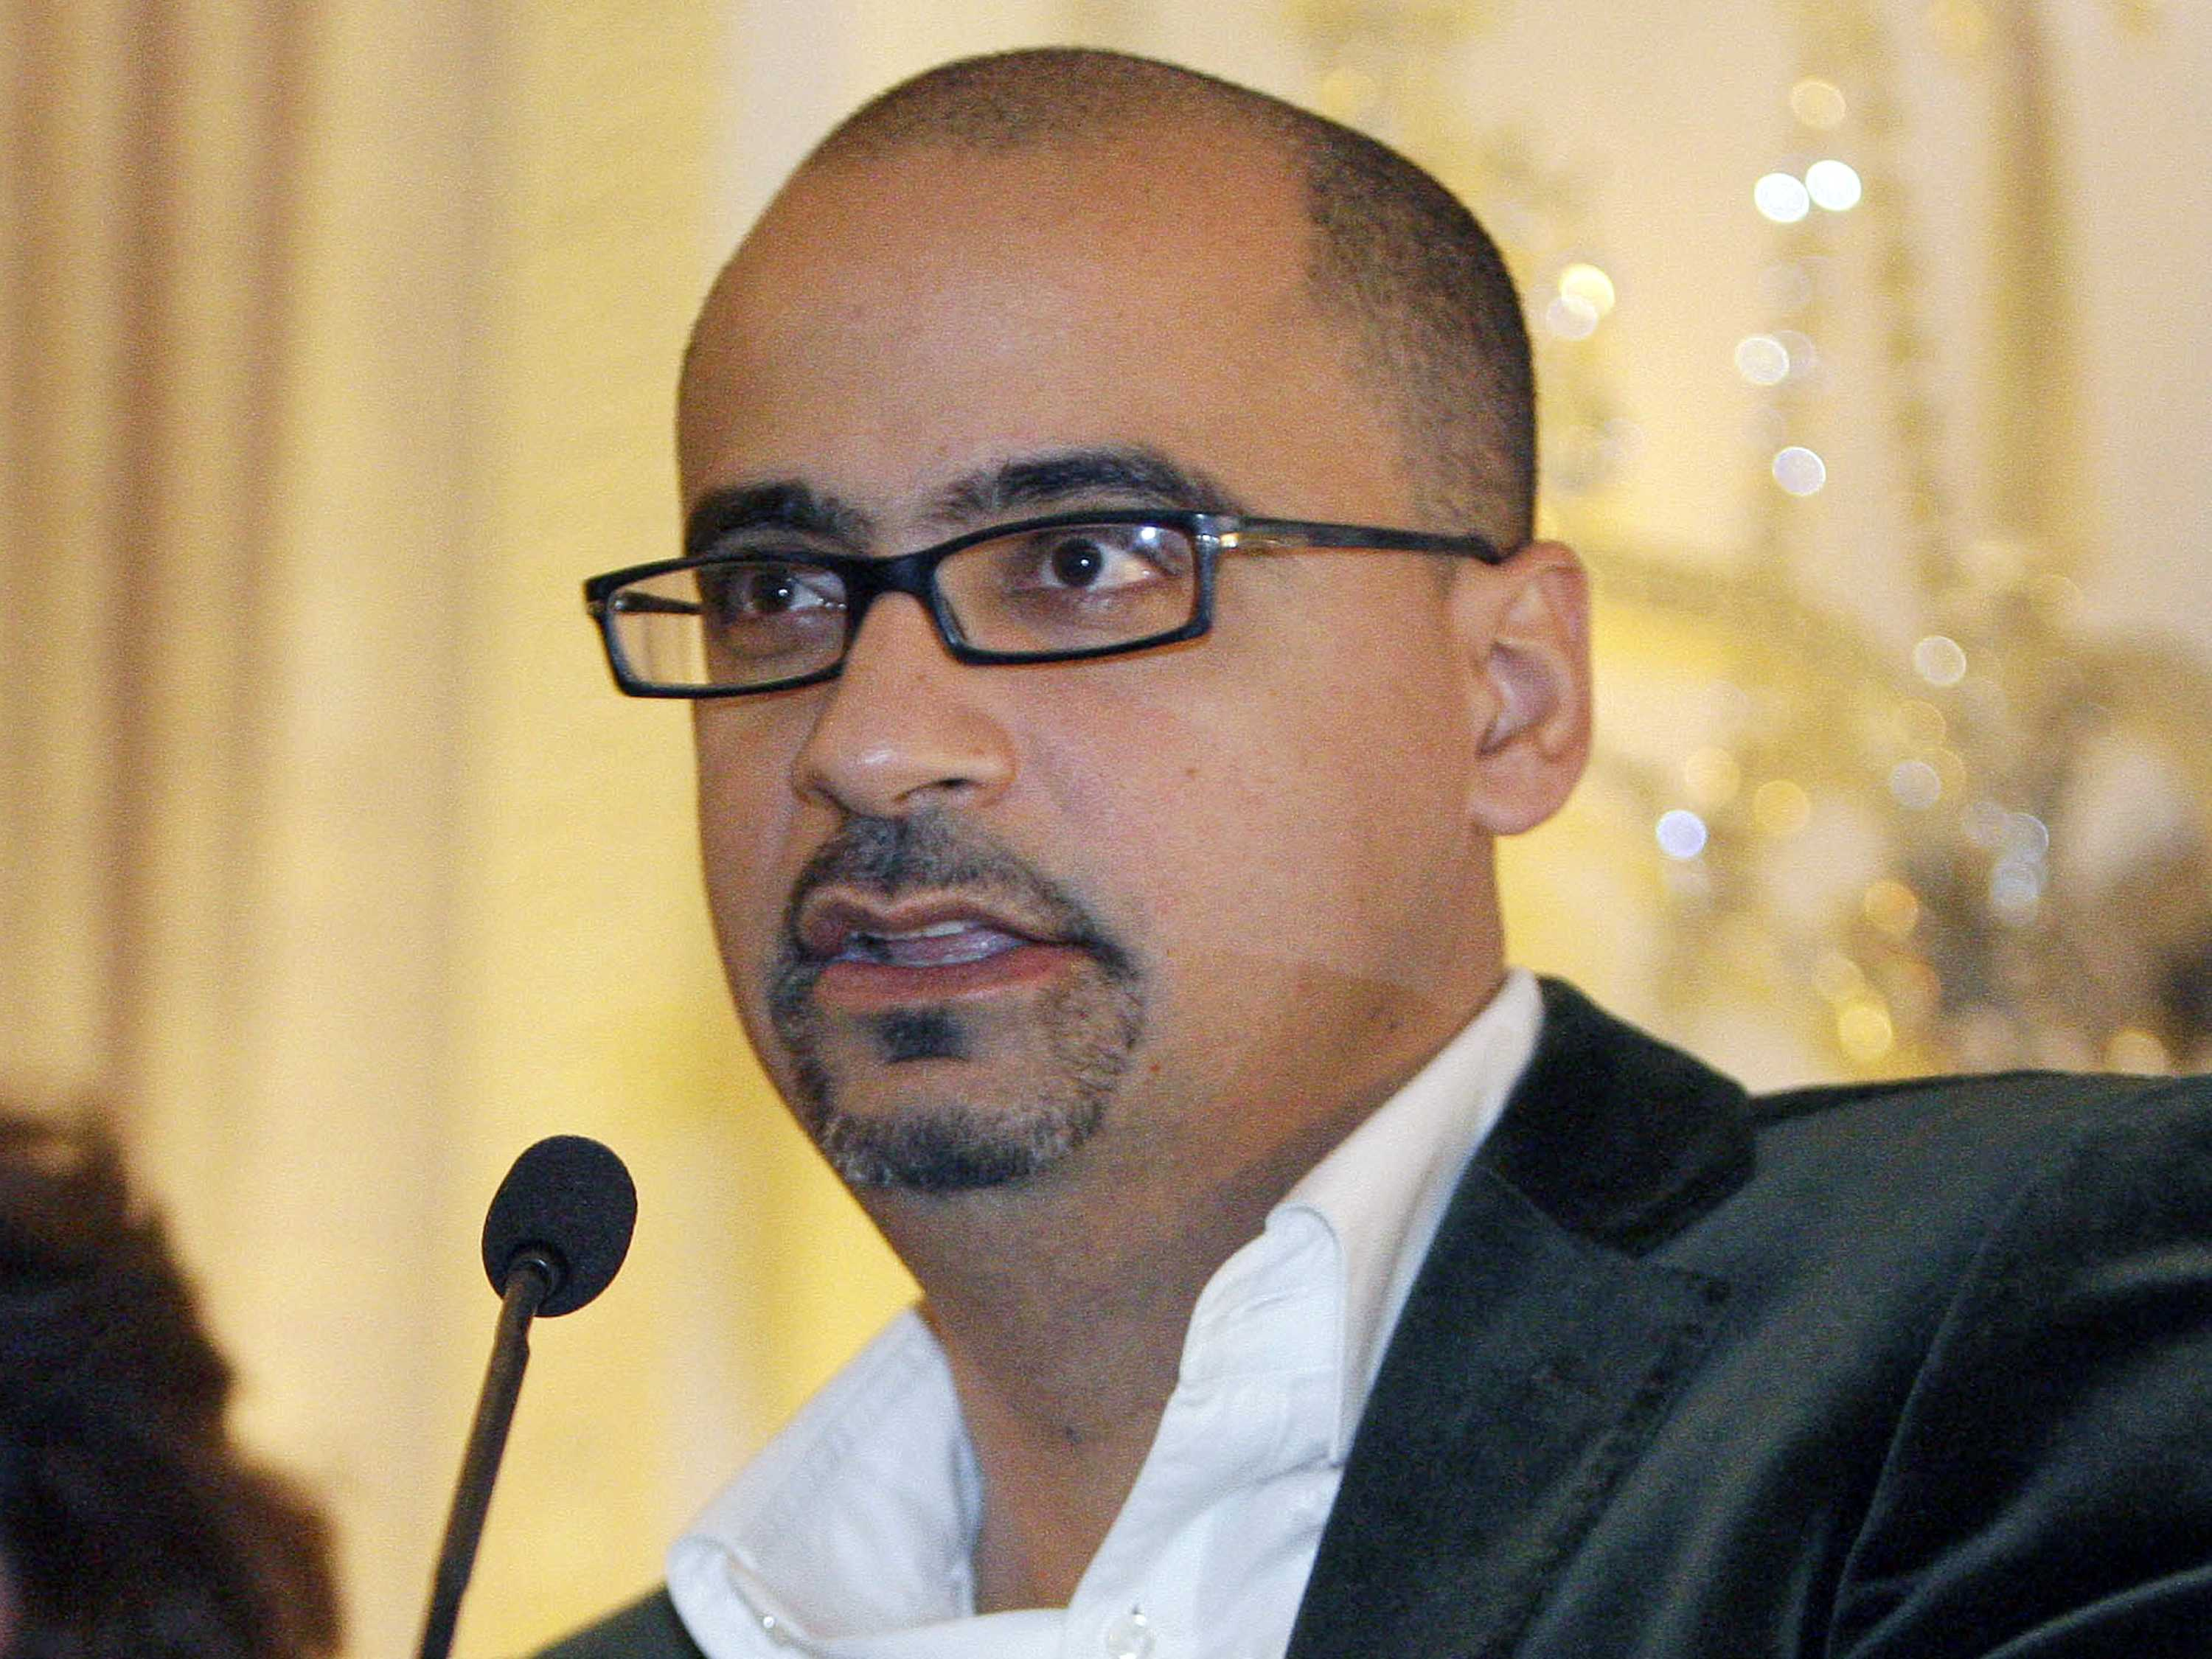 Author Junot Diaz Withdraws From Festival Amid Allegations